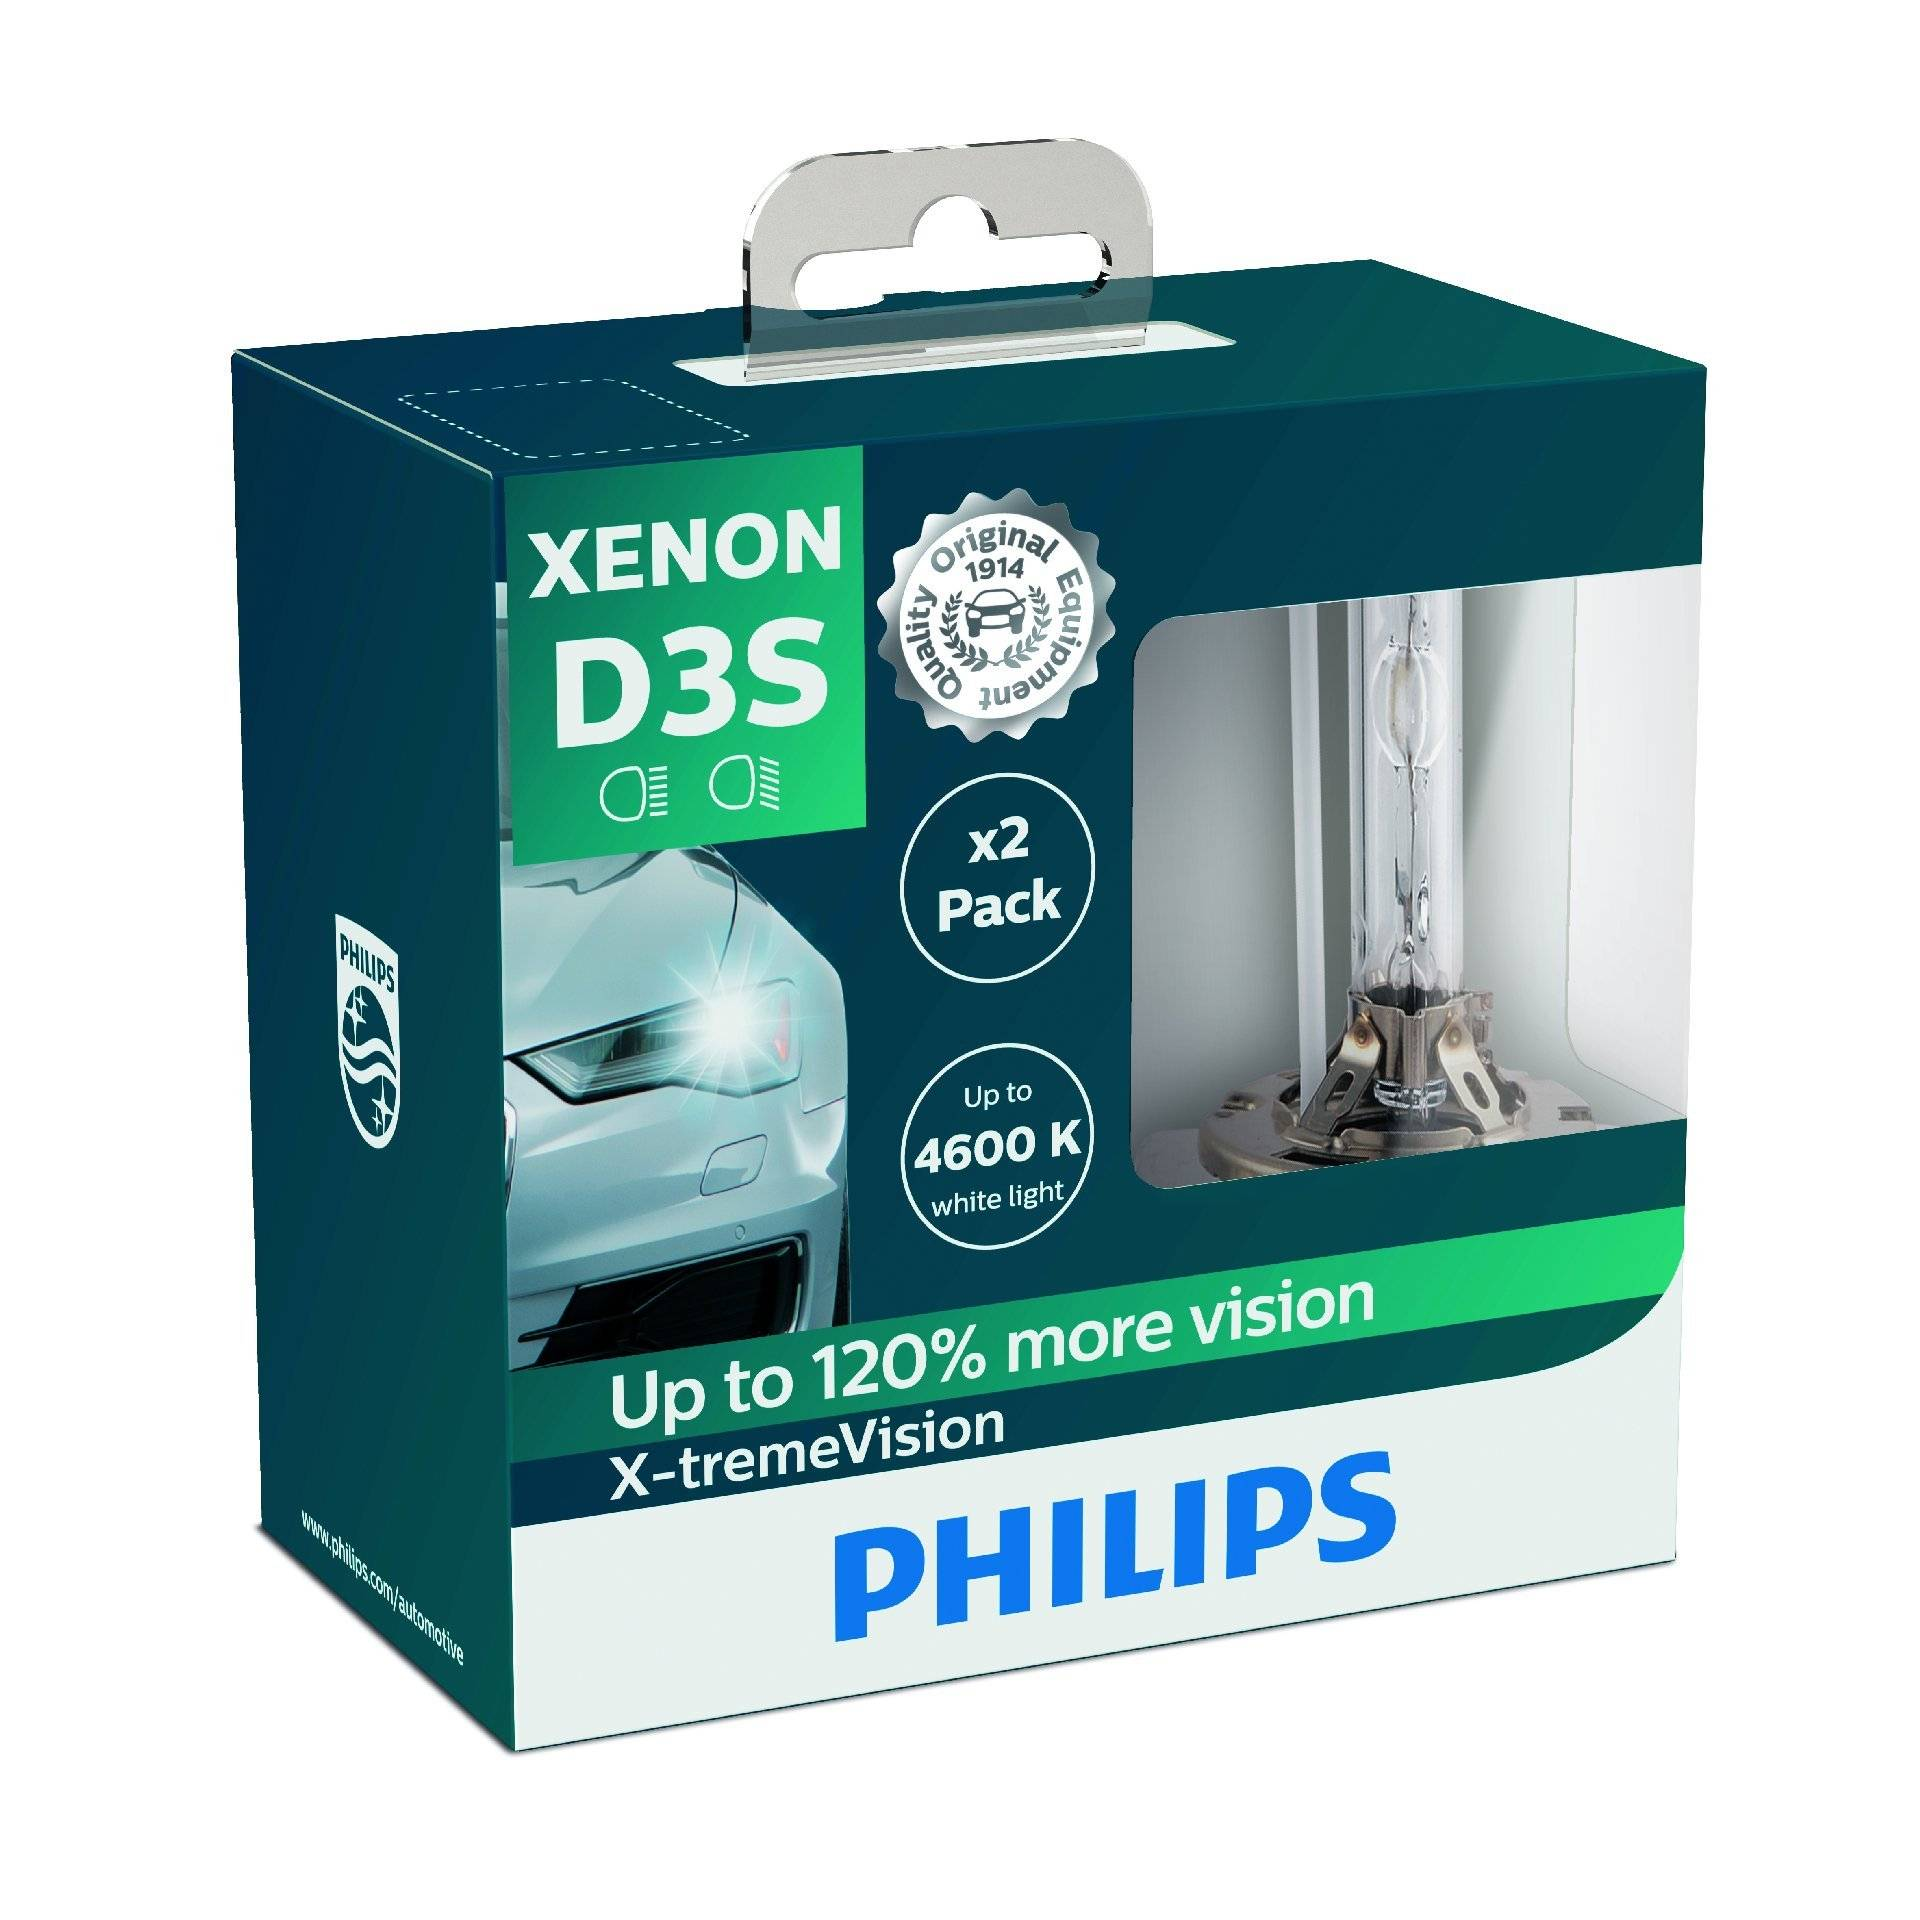 Philips 42403XVS2 Xenon-Scheinwerferlampe X-tremeVision D3S, Doppelset von Philips automotive lighting